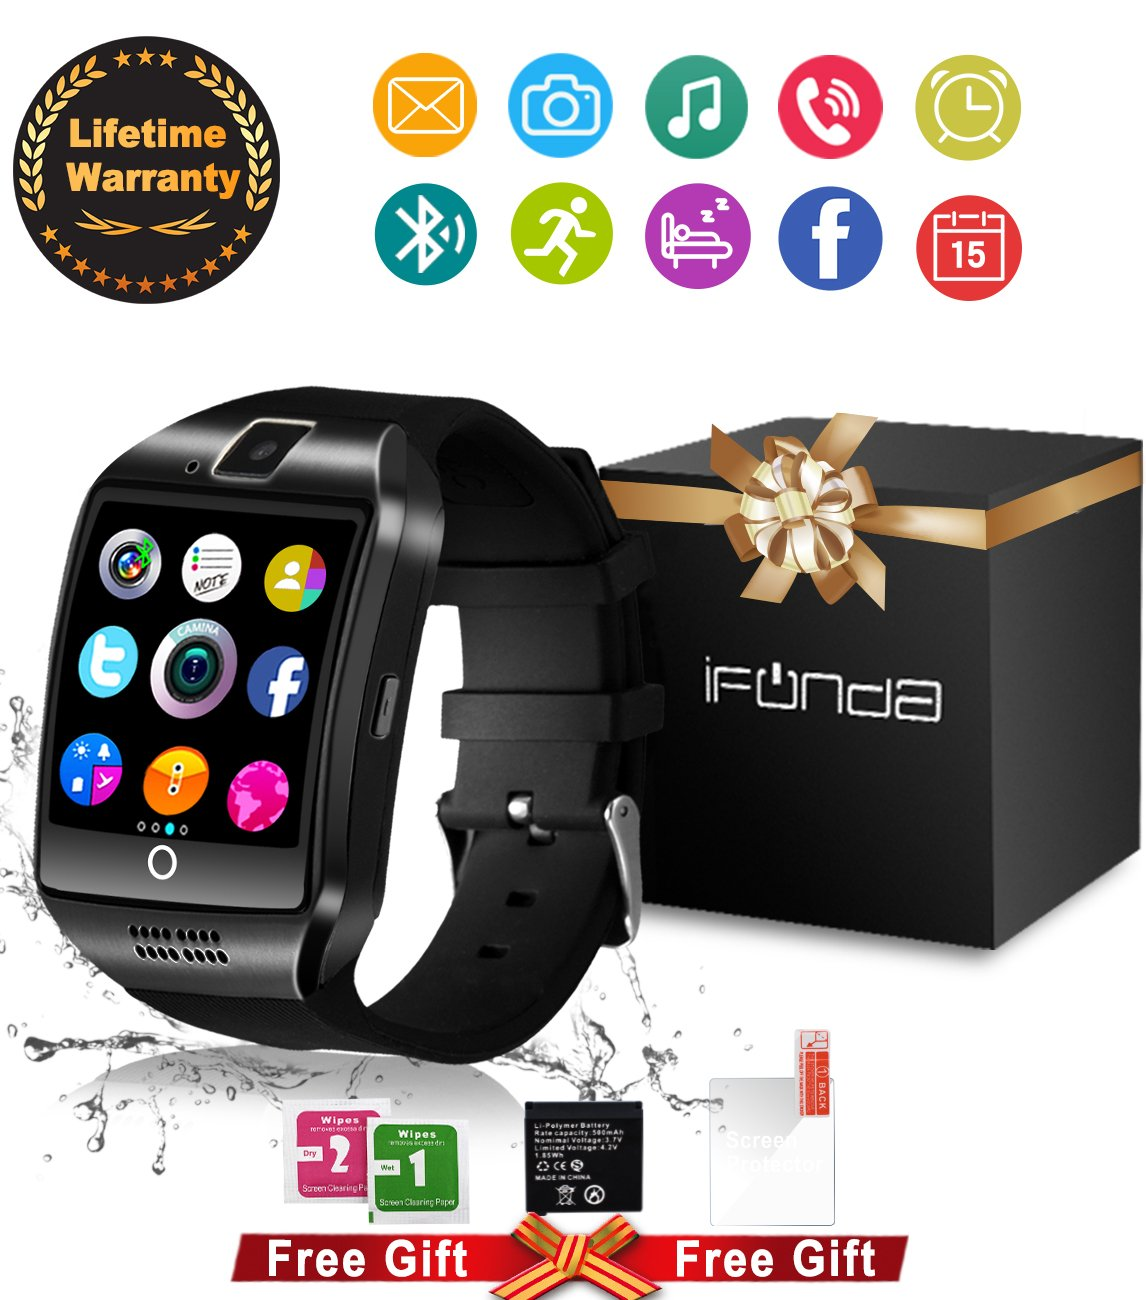 best watches stuff images unlocked watch which to digital screen smartwatch indigi touch smartphone buy on smart pinterest wrist new cellular android stylish